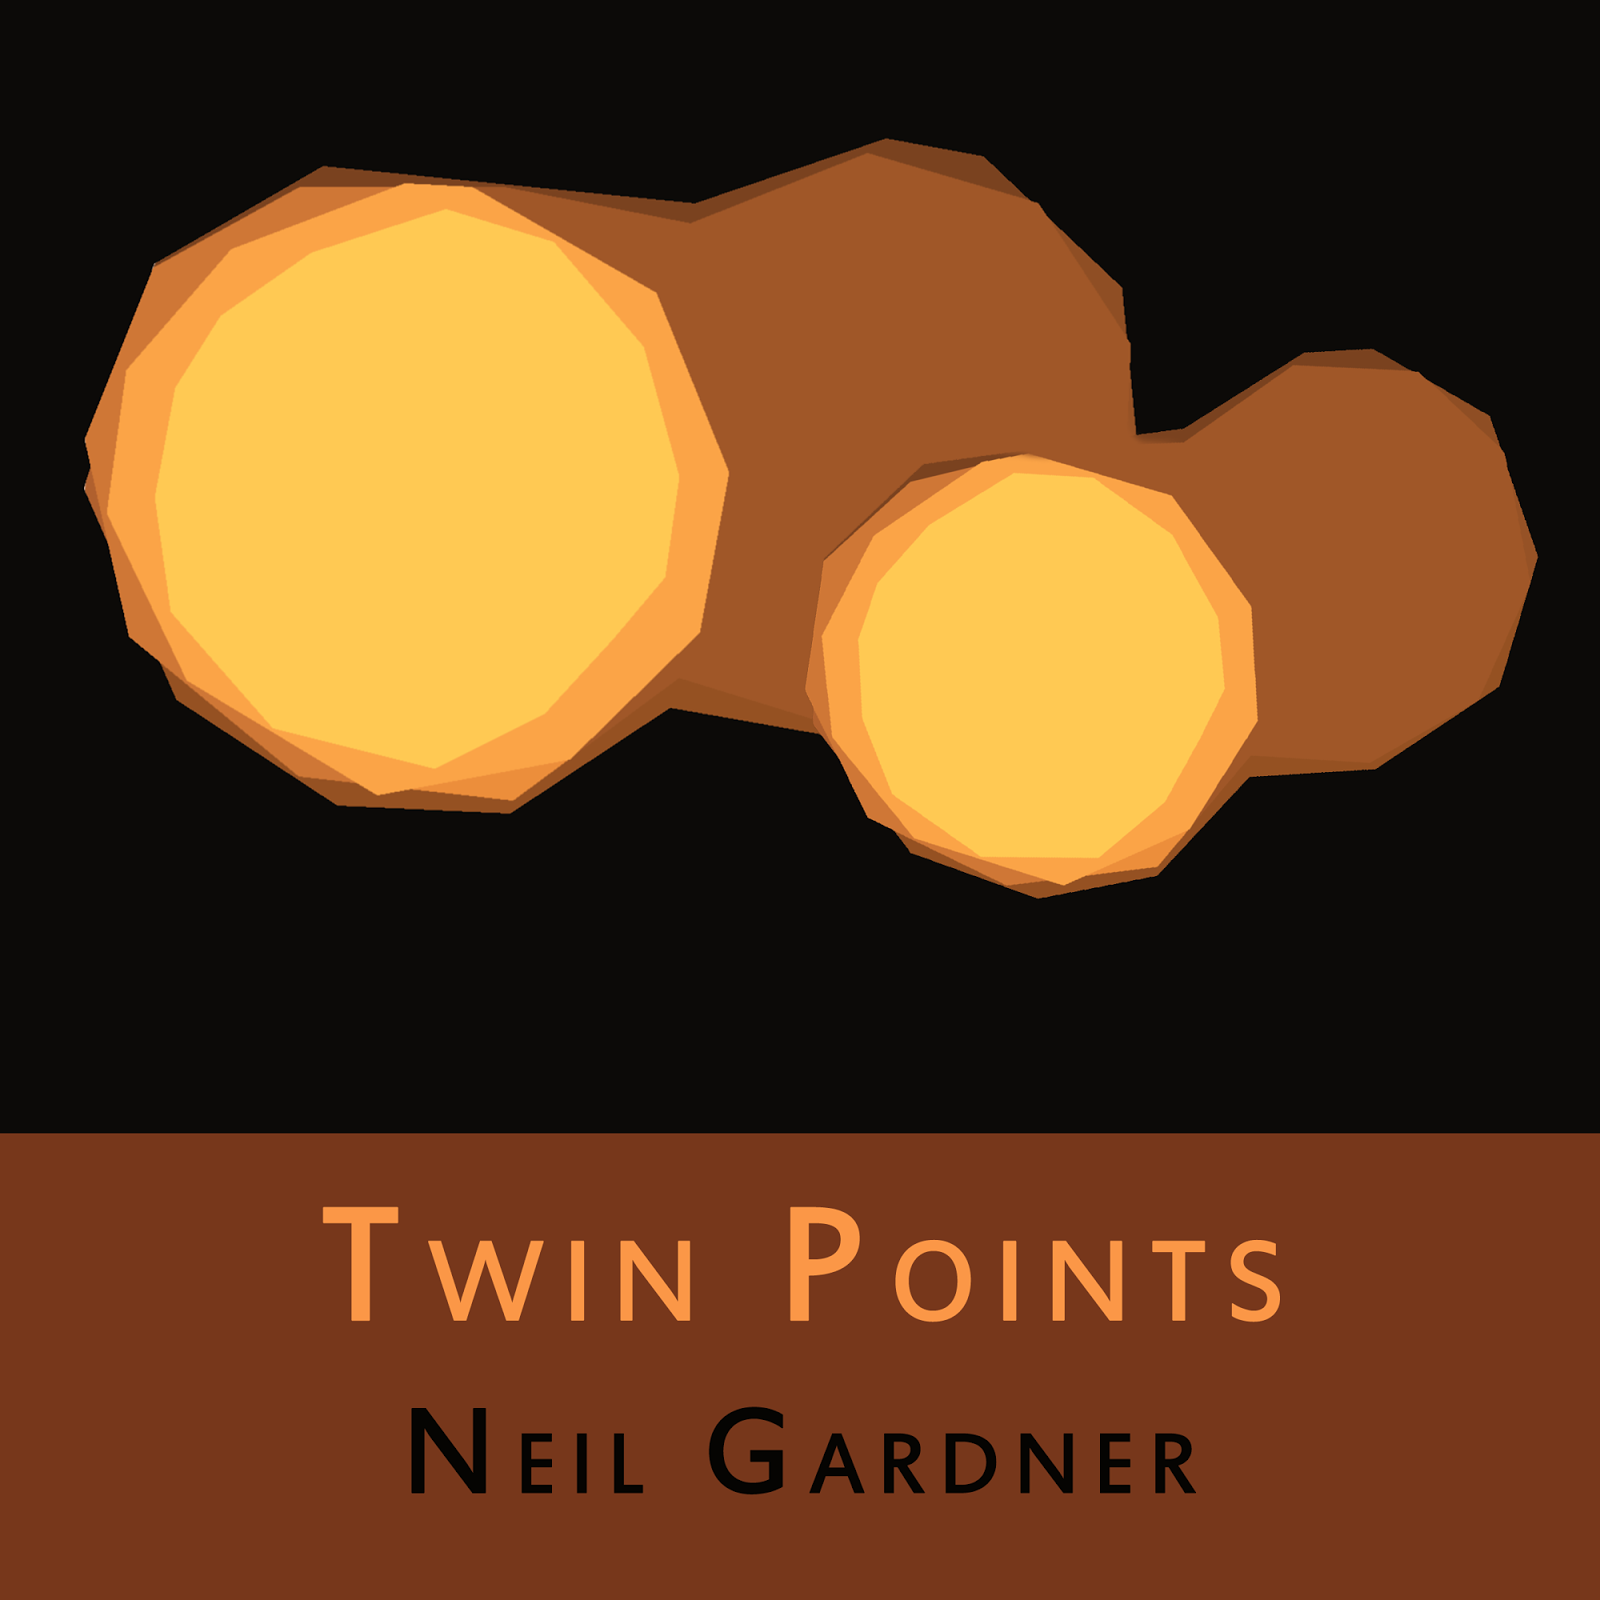 Twin Points